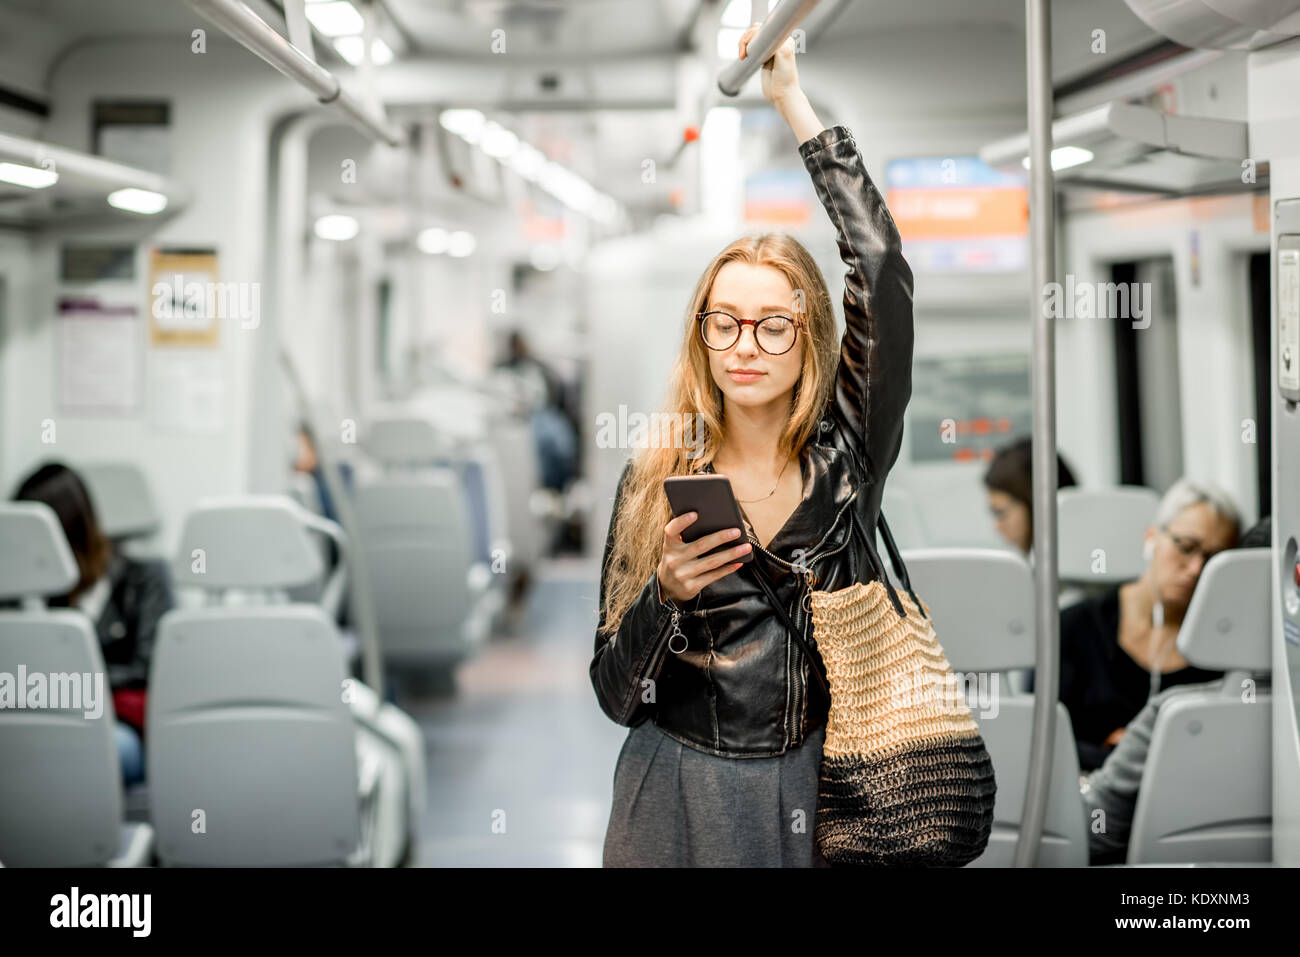 Woman riding at the modern train Stock Photo